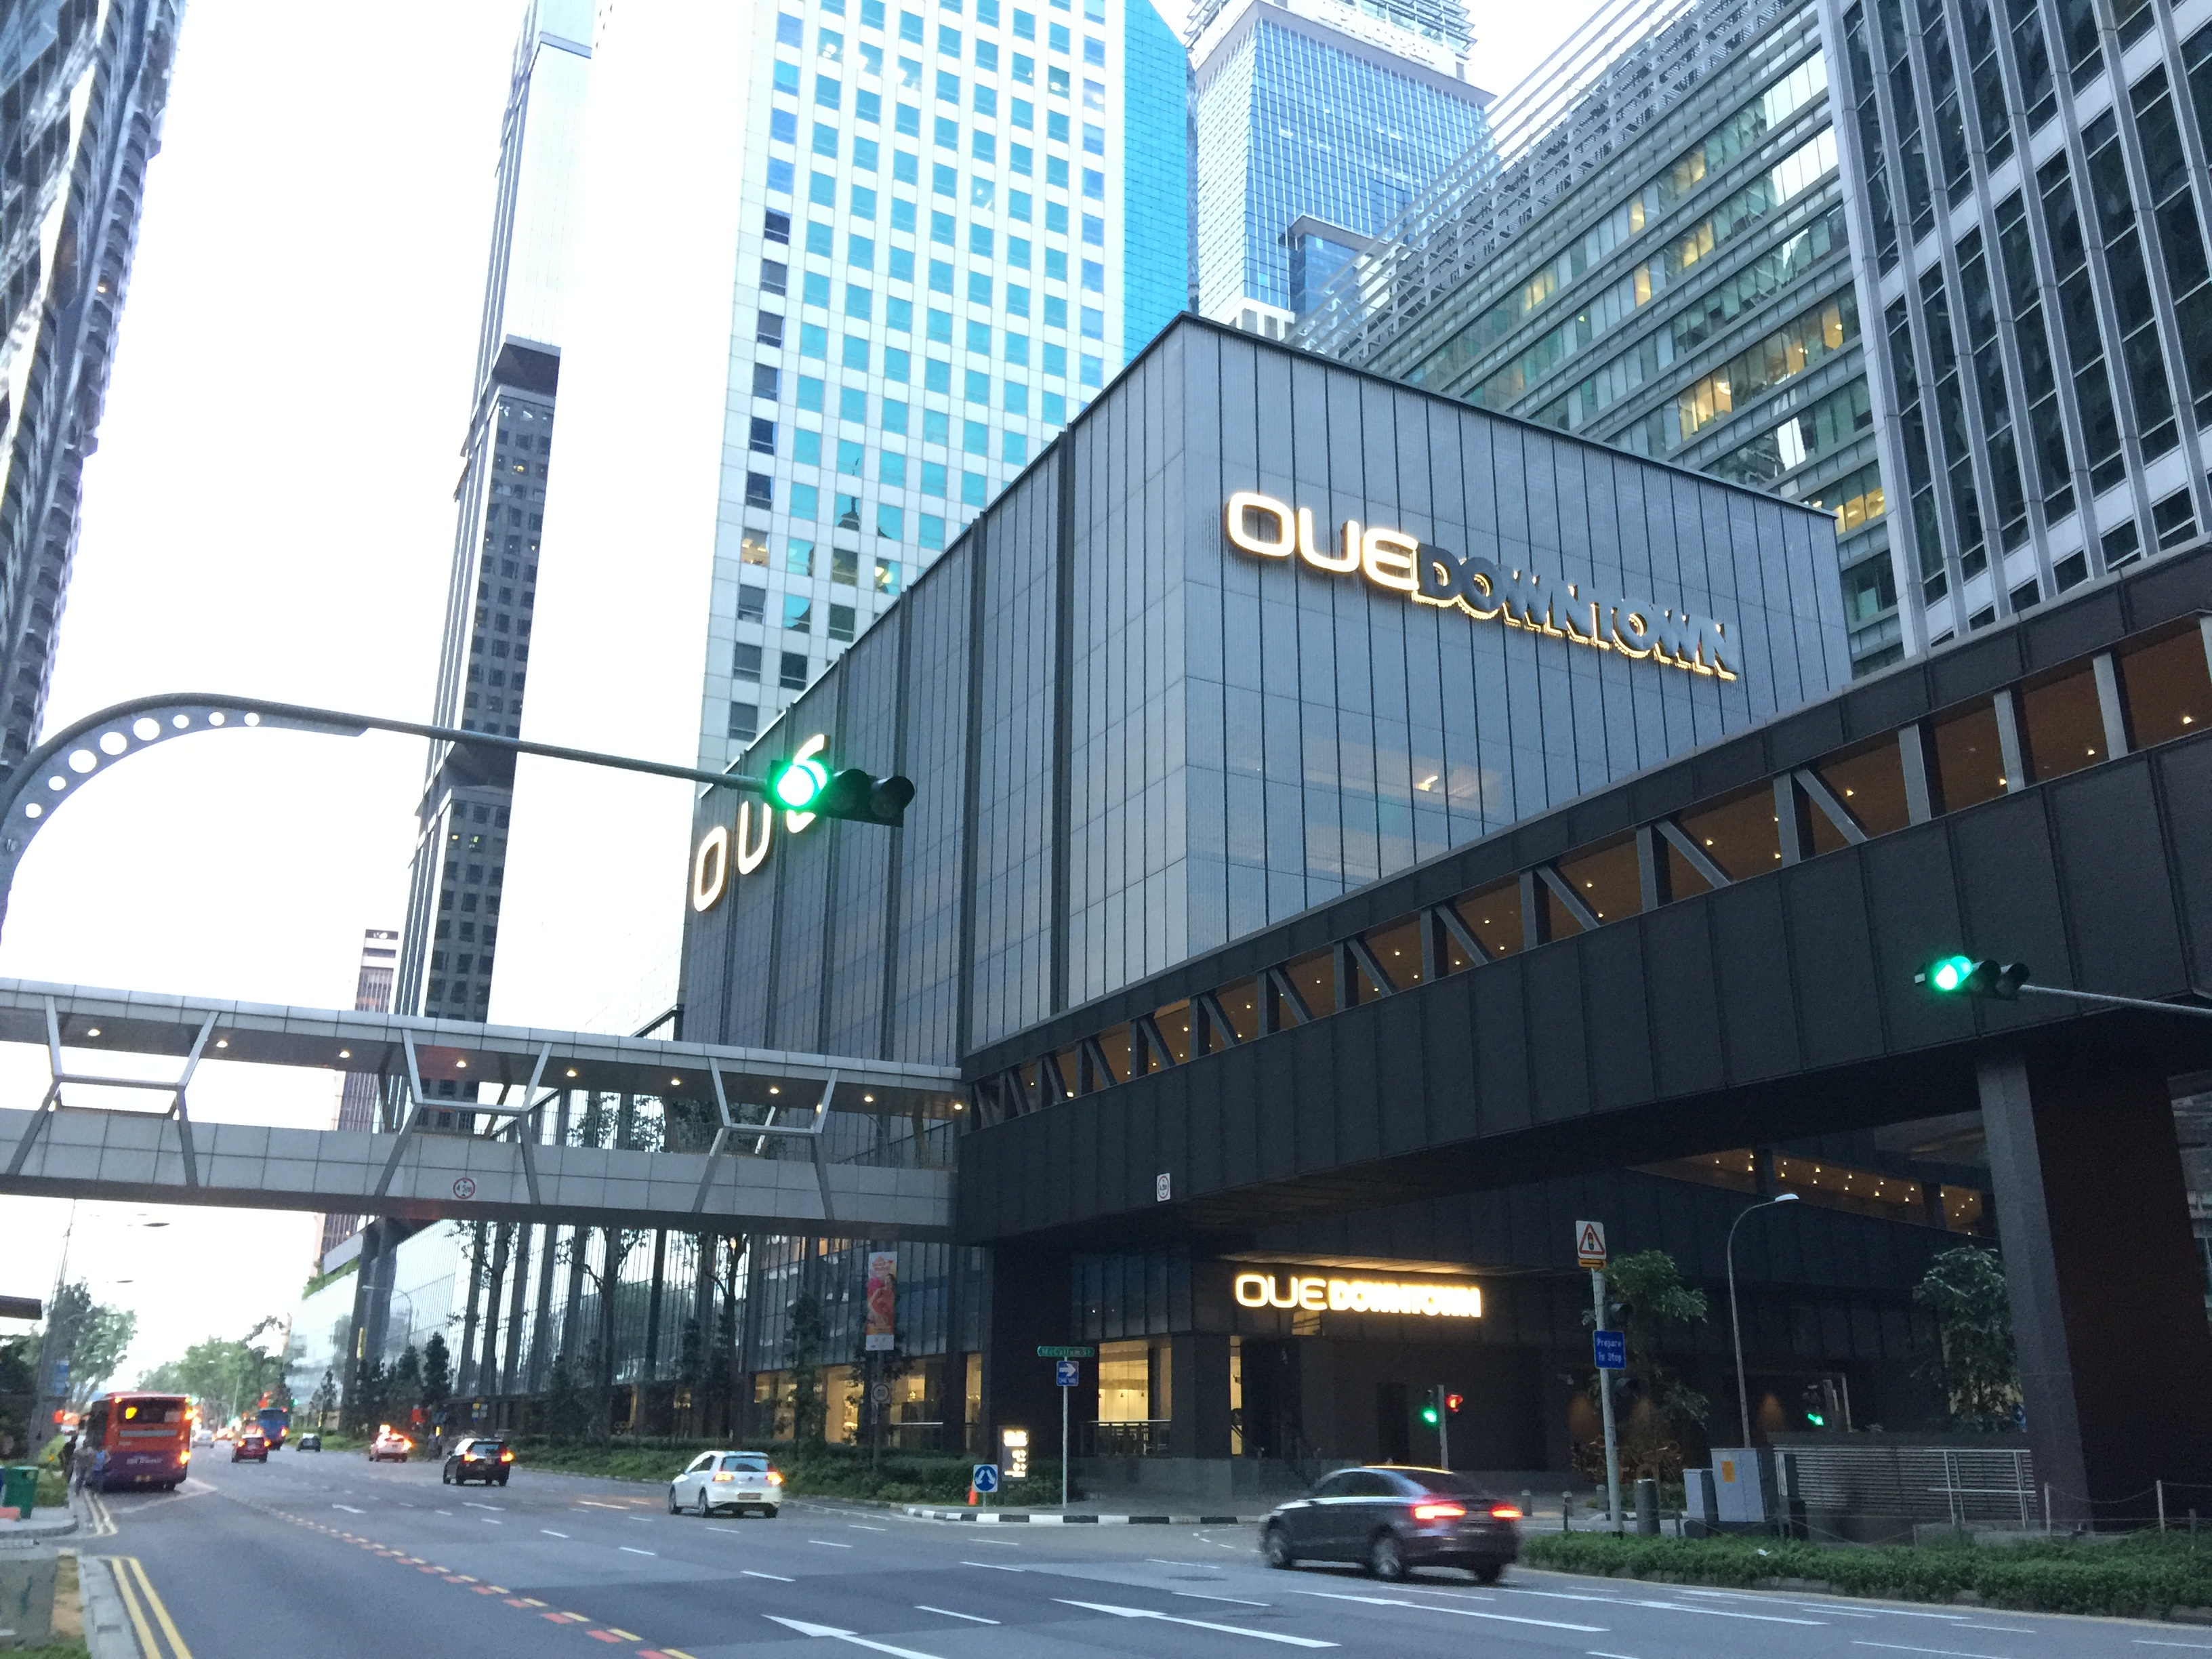 OUE Commercial REIT's OUE Downtown (Photo: REITsWeek)